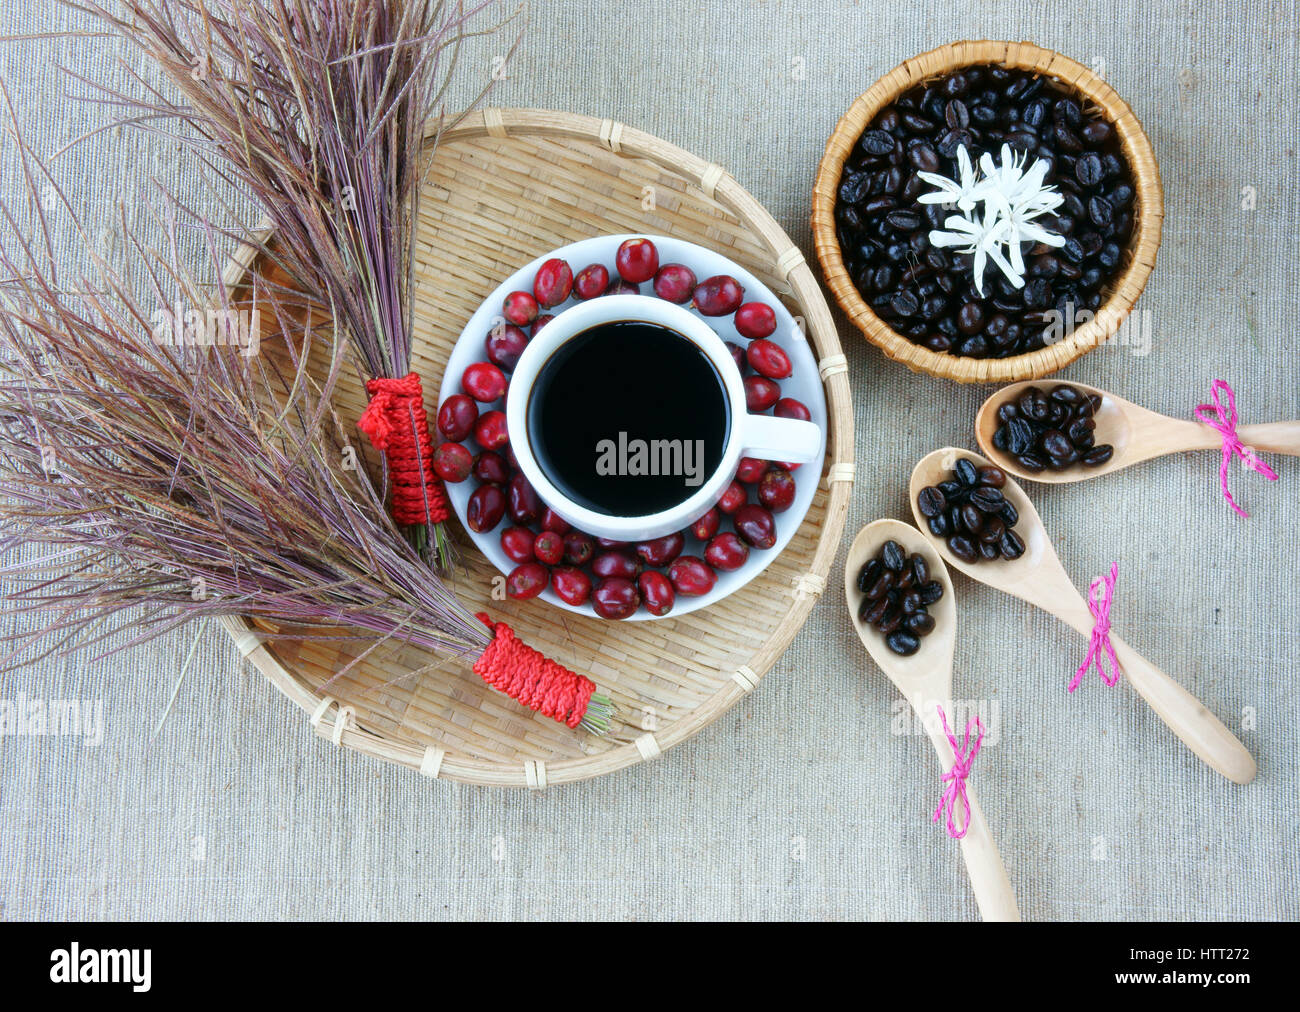 harmony creative for decor from coffee bean cup of black cafe ripe berries basket of roasted cafe bean white flower wooden spoon set up on sac - Black Cafe Decor